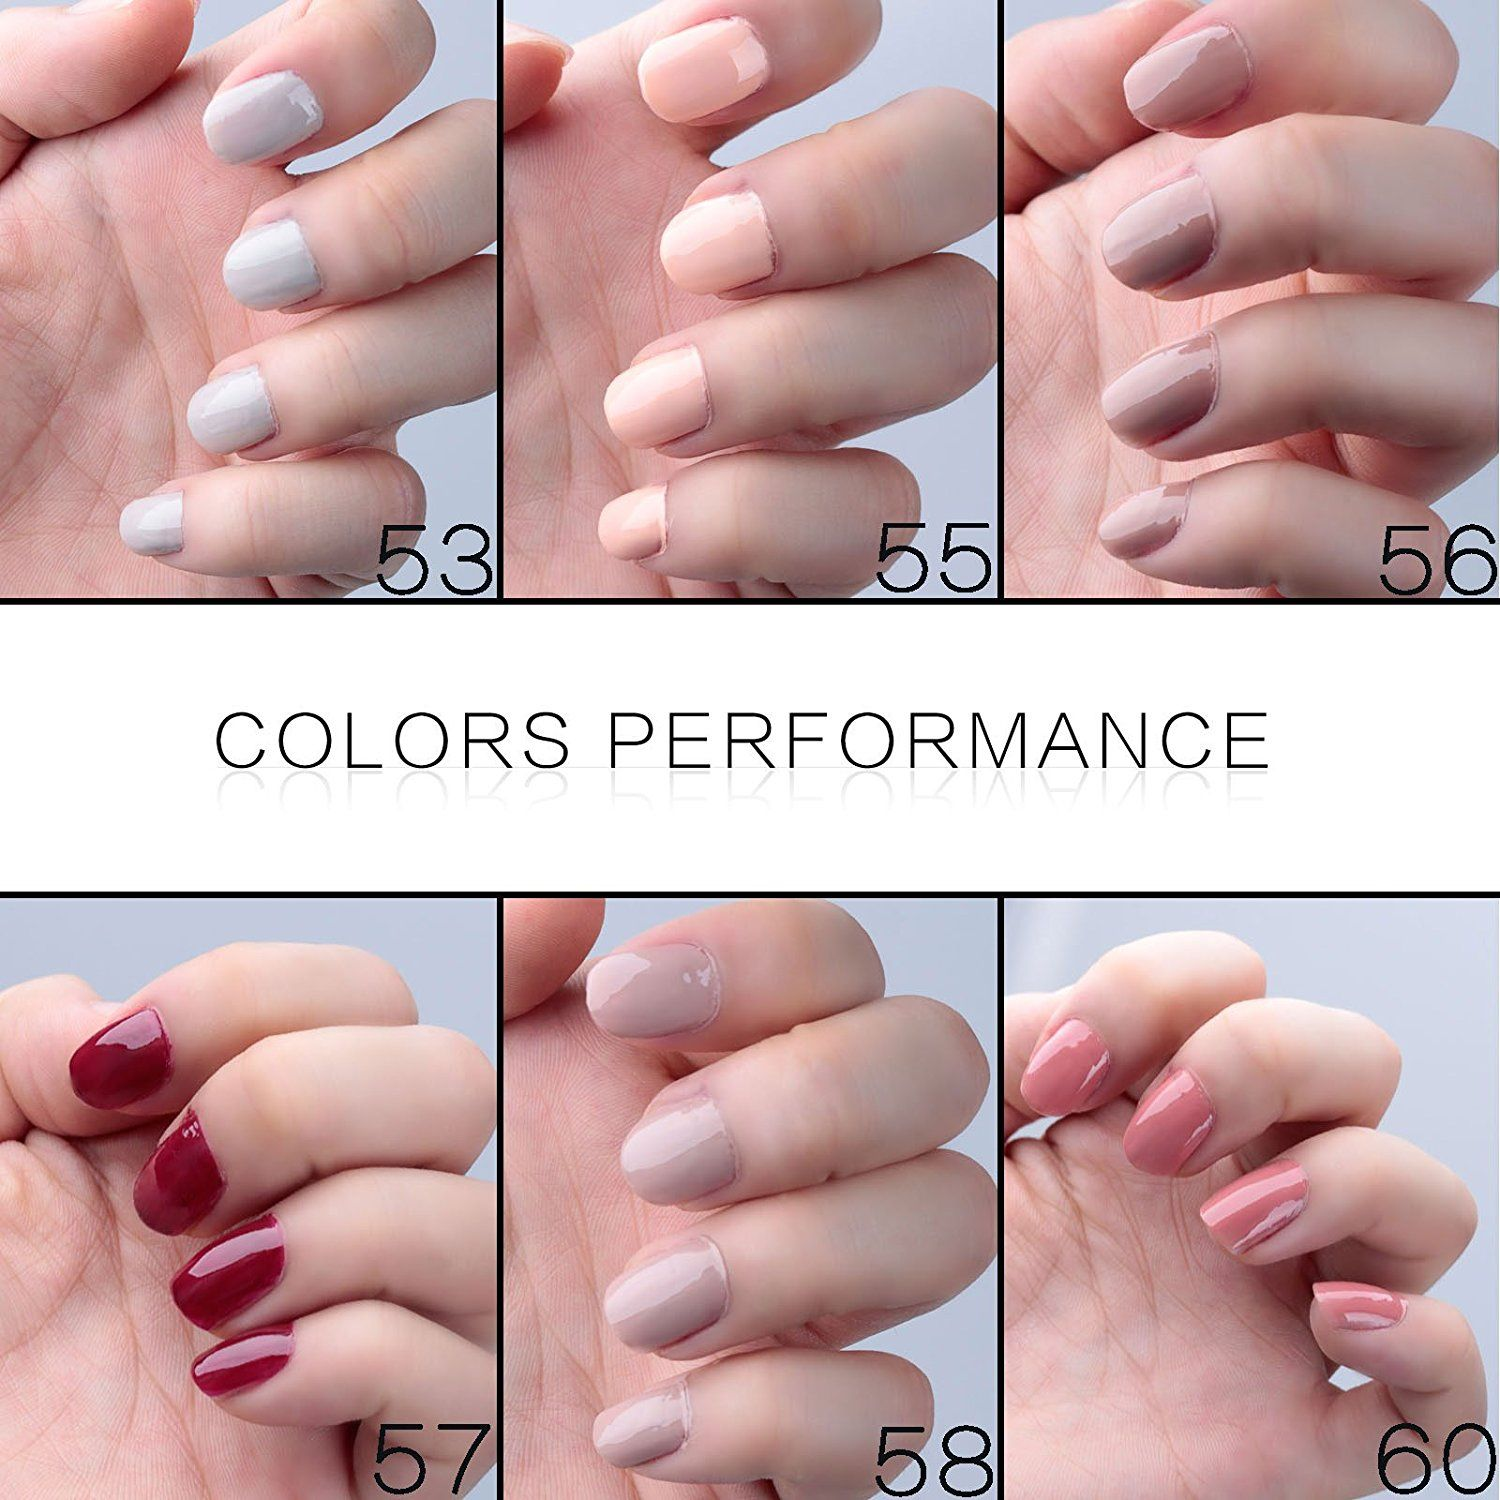 Gellen Nail Polish Review Choices From Over 300 Colors In 2020 Gel Nails Nail Colors Types Of Nail Polish